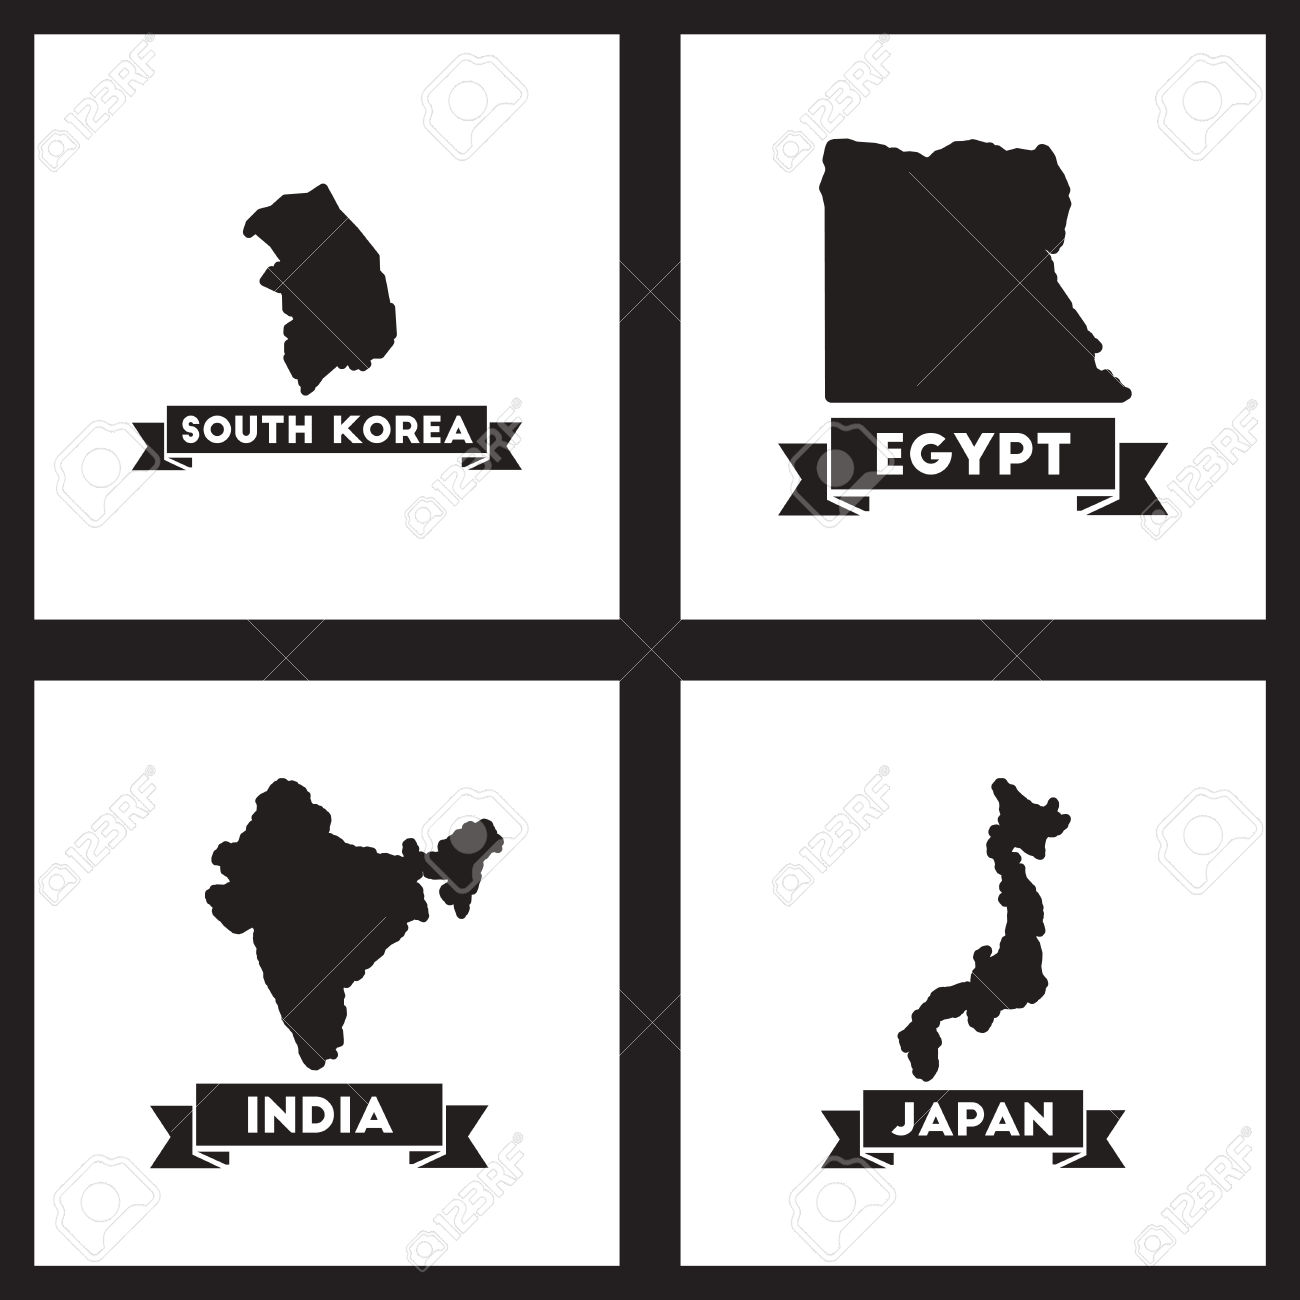 Concept Flat Icons Black And White Maps Of Countries World Royalty.